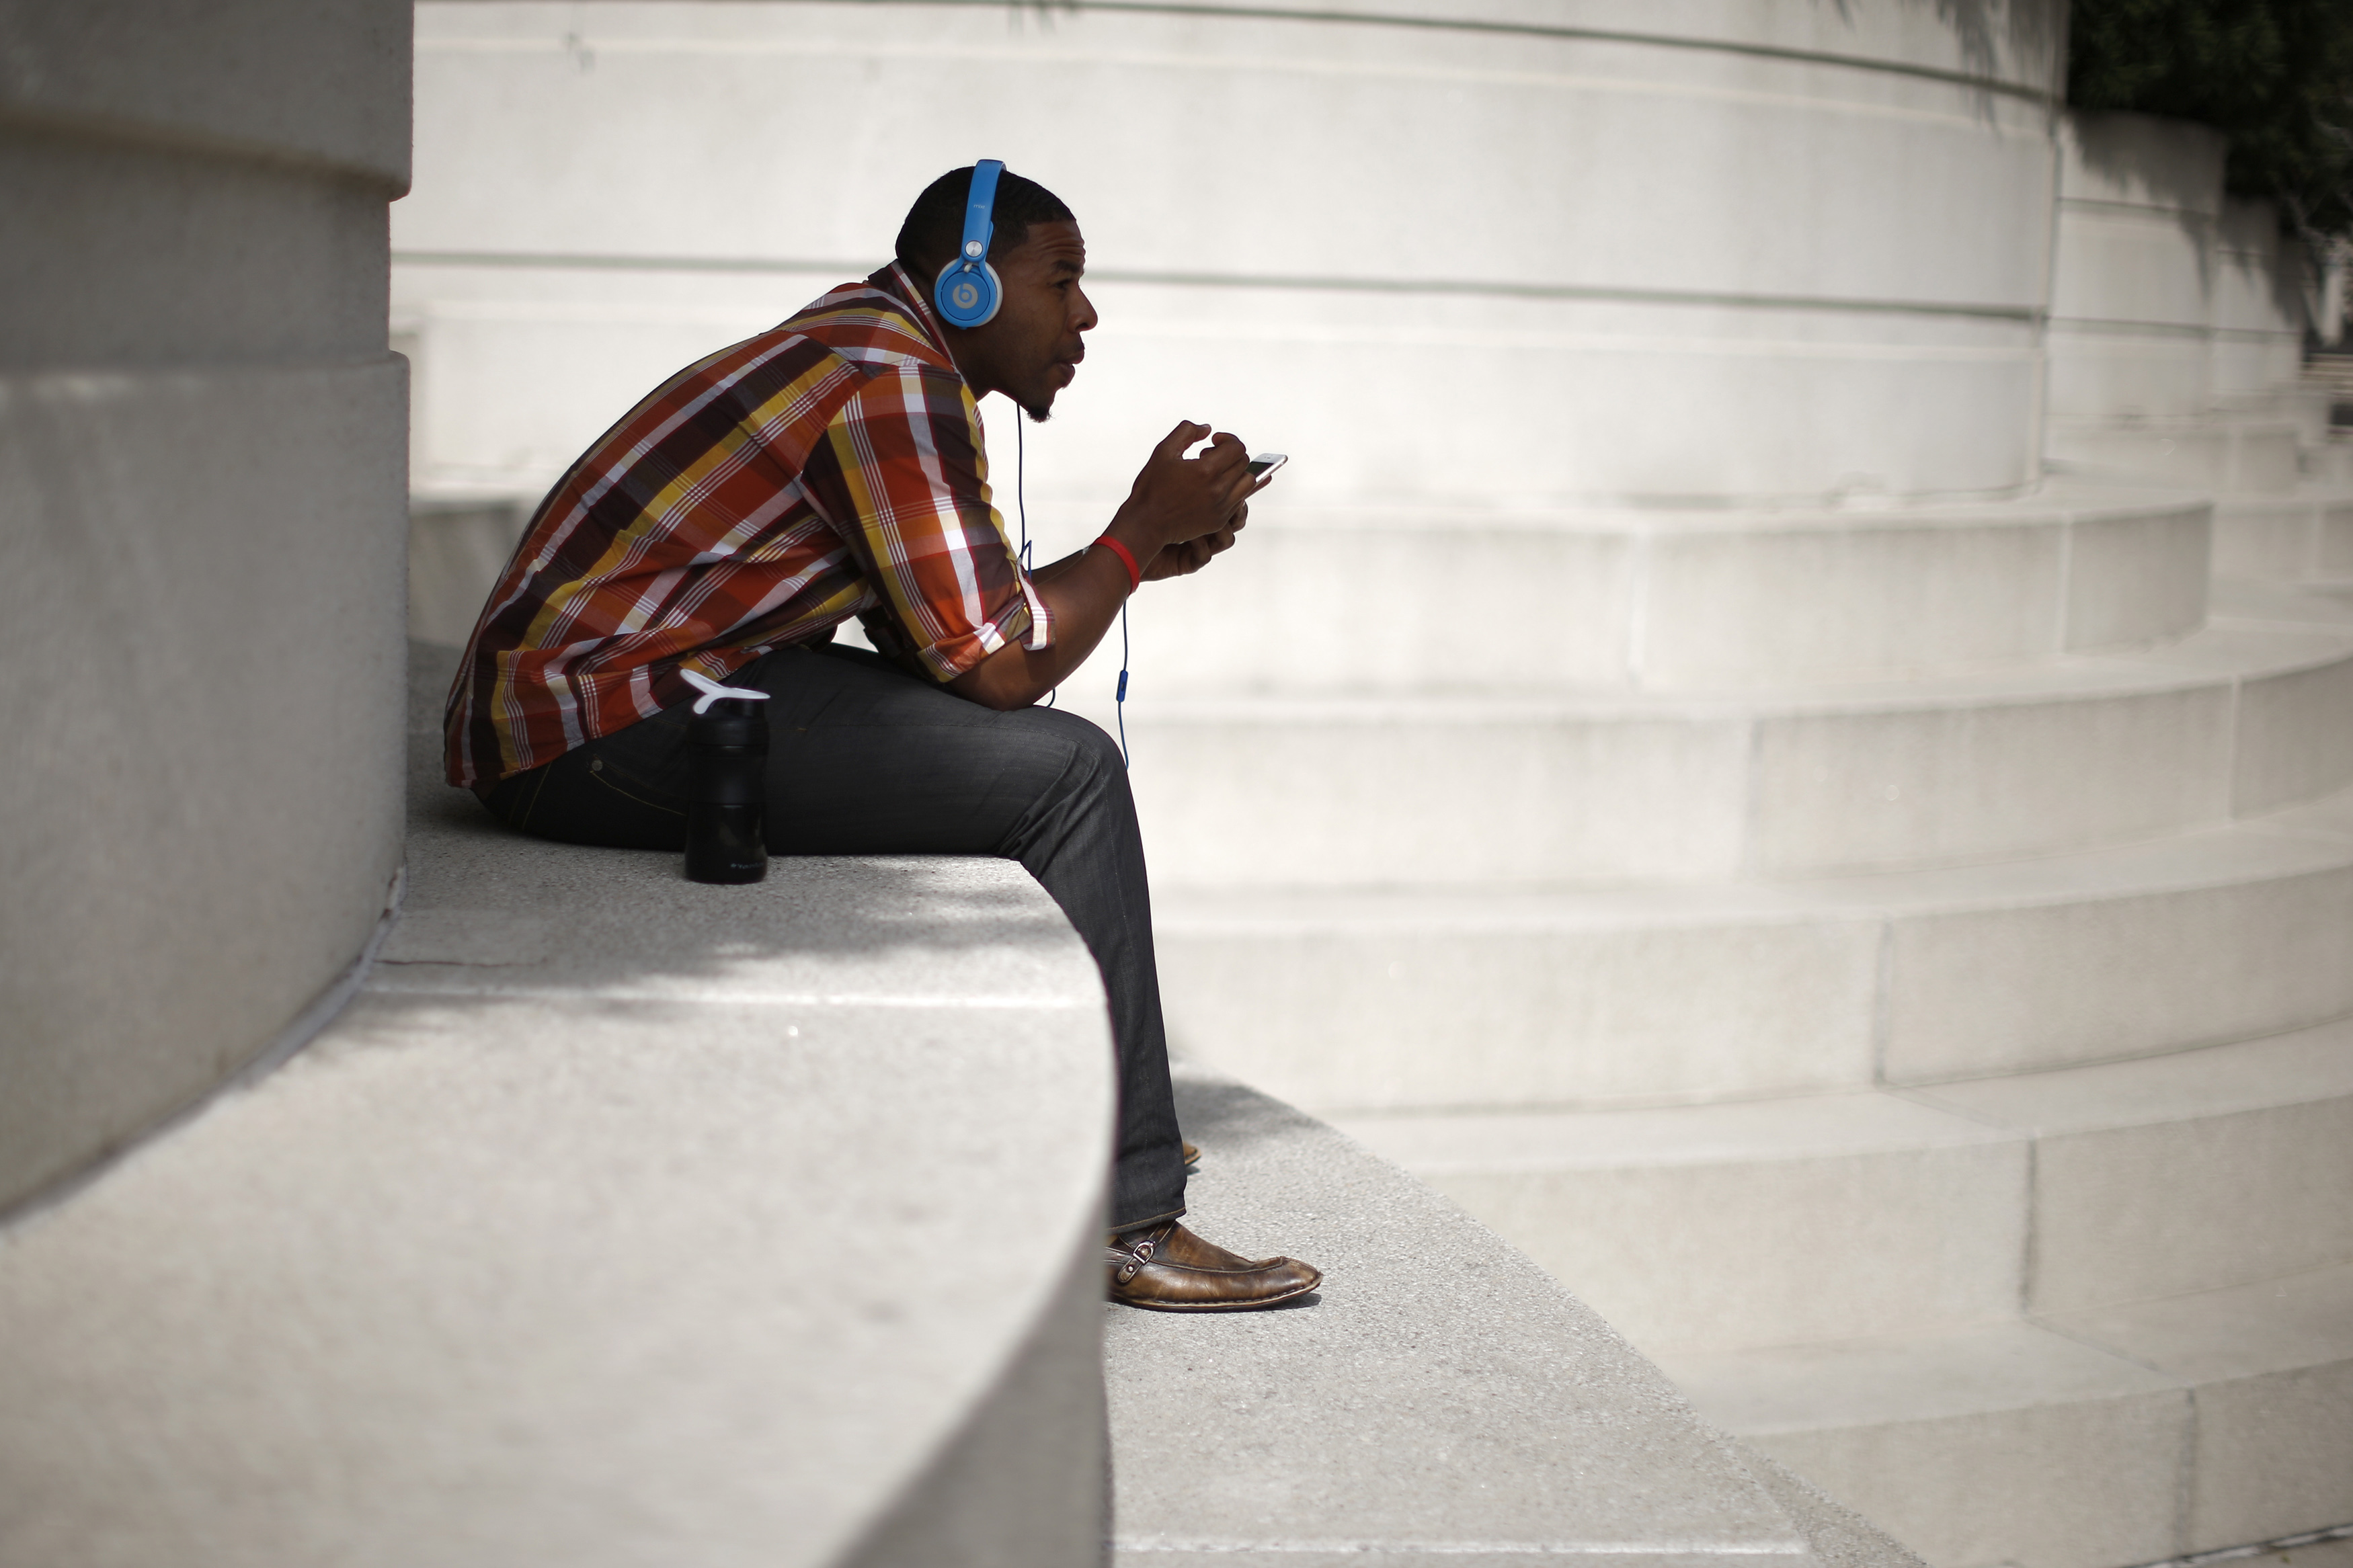 A man with Beats headphones listens to music on an iPhone in Los Angeles